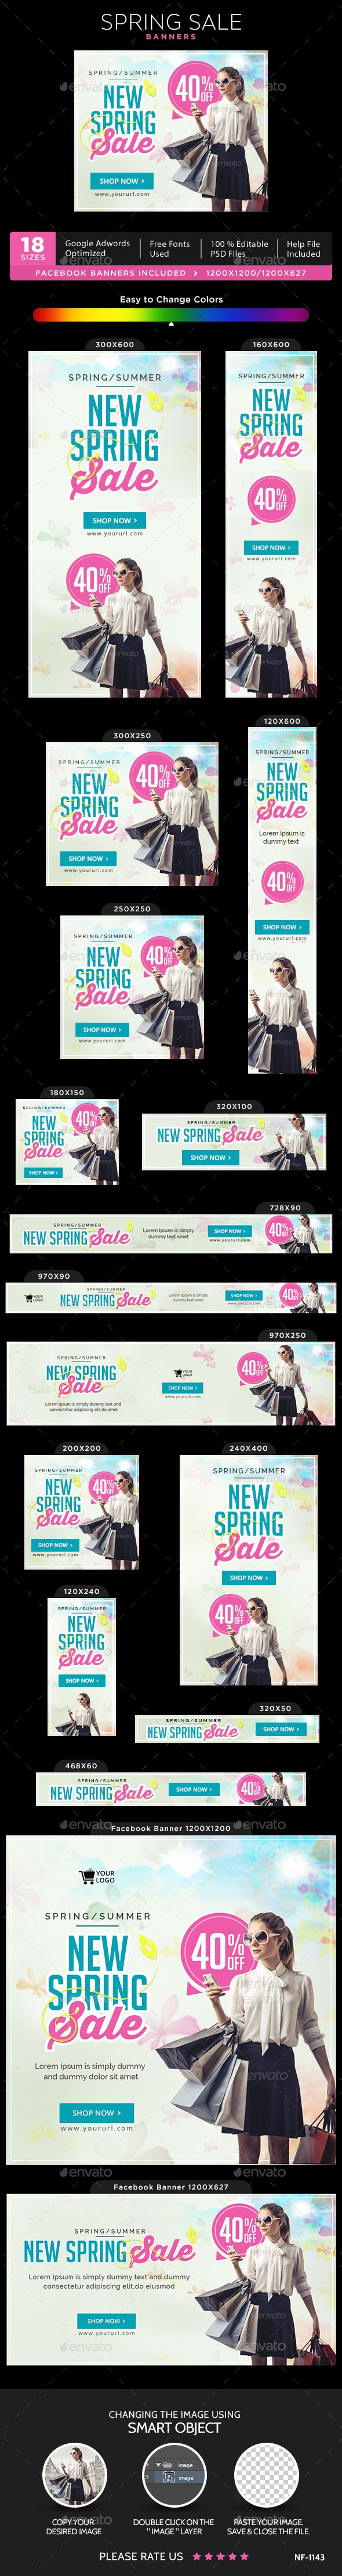 Spring Sale Banners — Photoshop PSD #gif banner #banner pack • Available here → https://graphicriver.net/item/spring-sale-banners/15233791?ref=pxcr